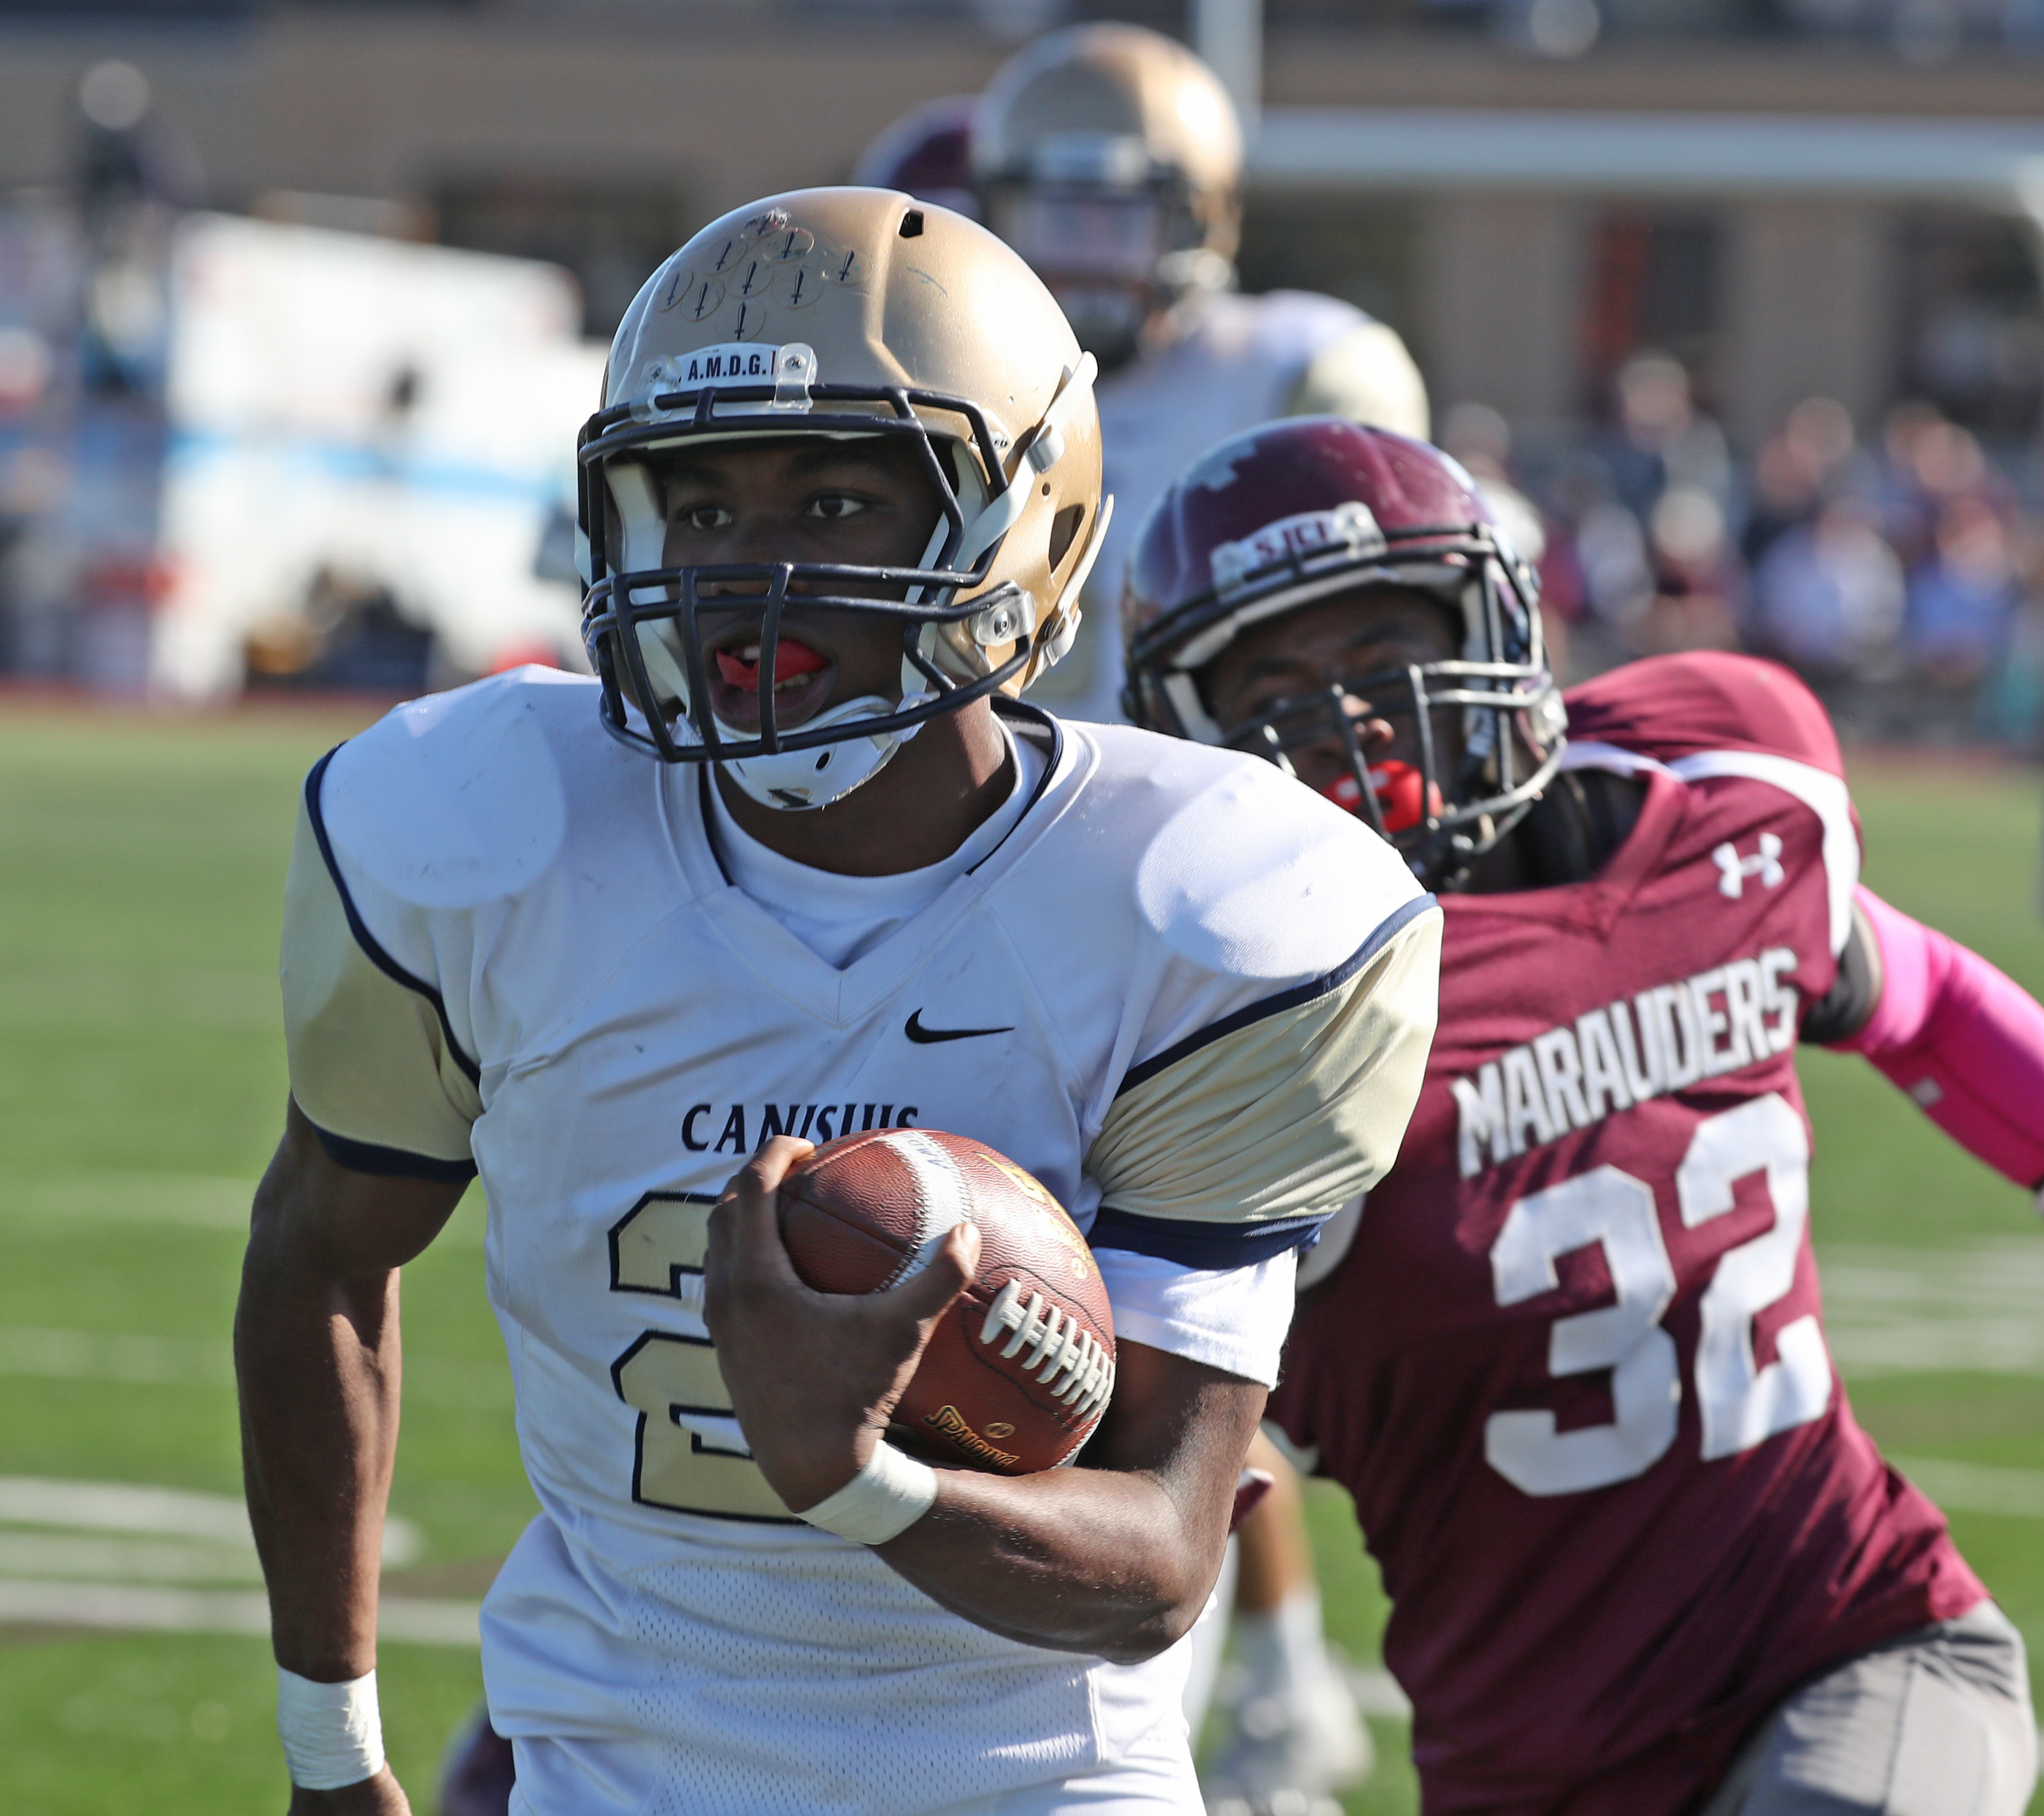 Kenyatta Huston breaks away for a 53-yard touchdown for Canisius in its win at St. Joe's.  (James P. McCoy/ Buffalo News)